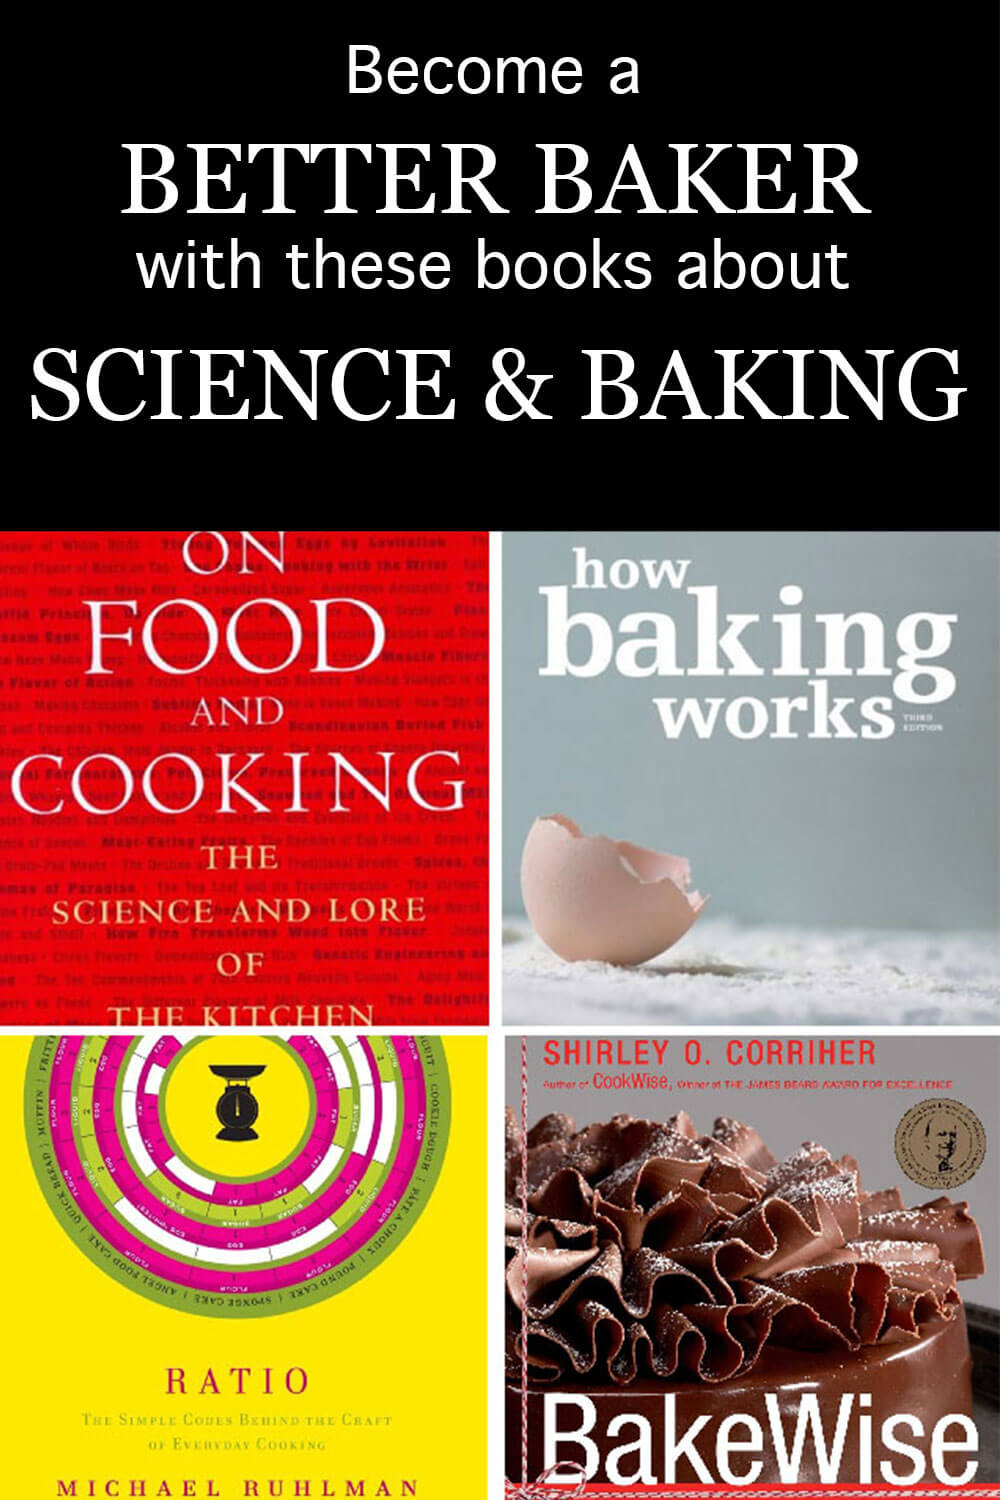 4 book covers of science of food and baking books: On Food and Cooking, How Baking Works, Ratio, and Bakewise